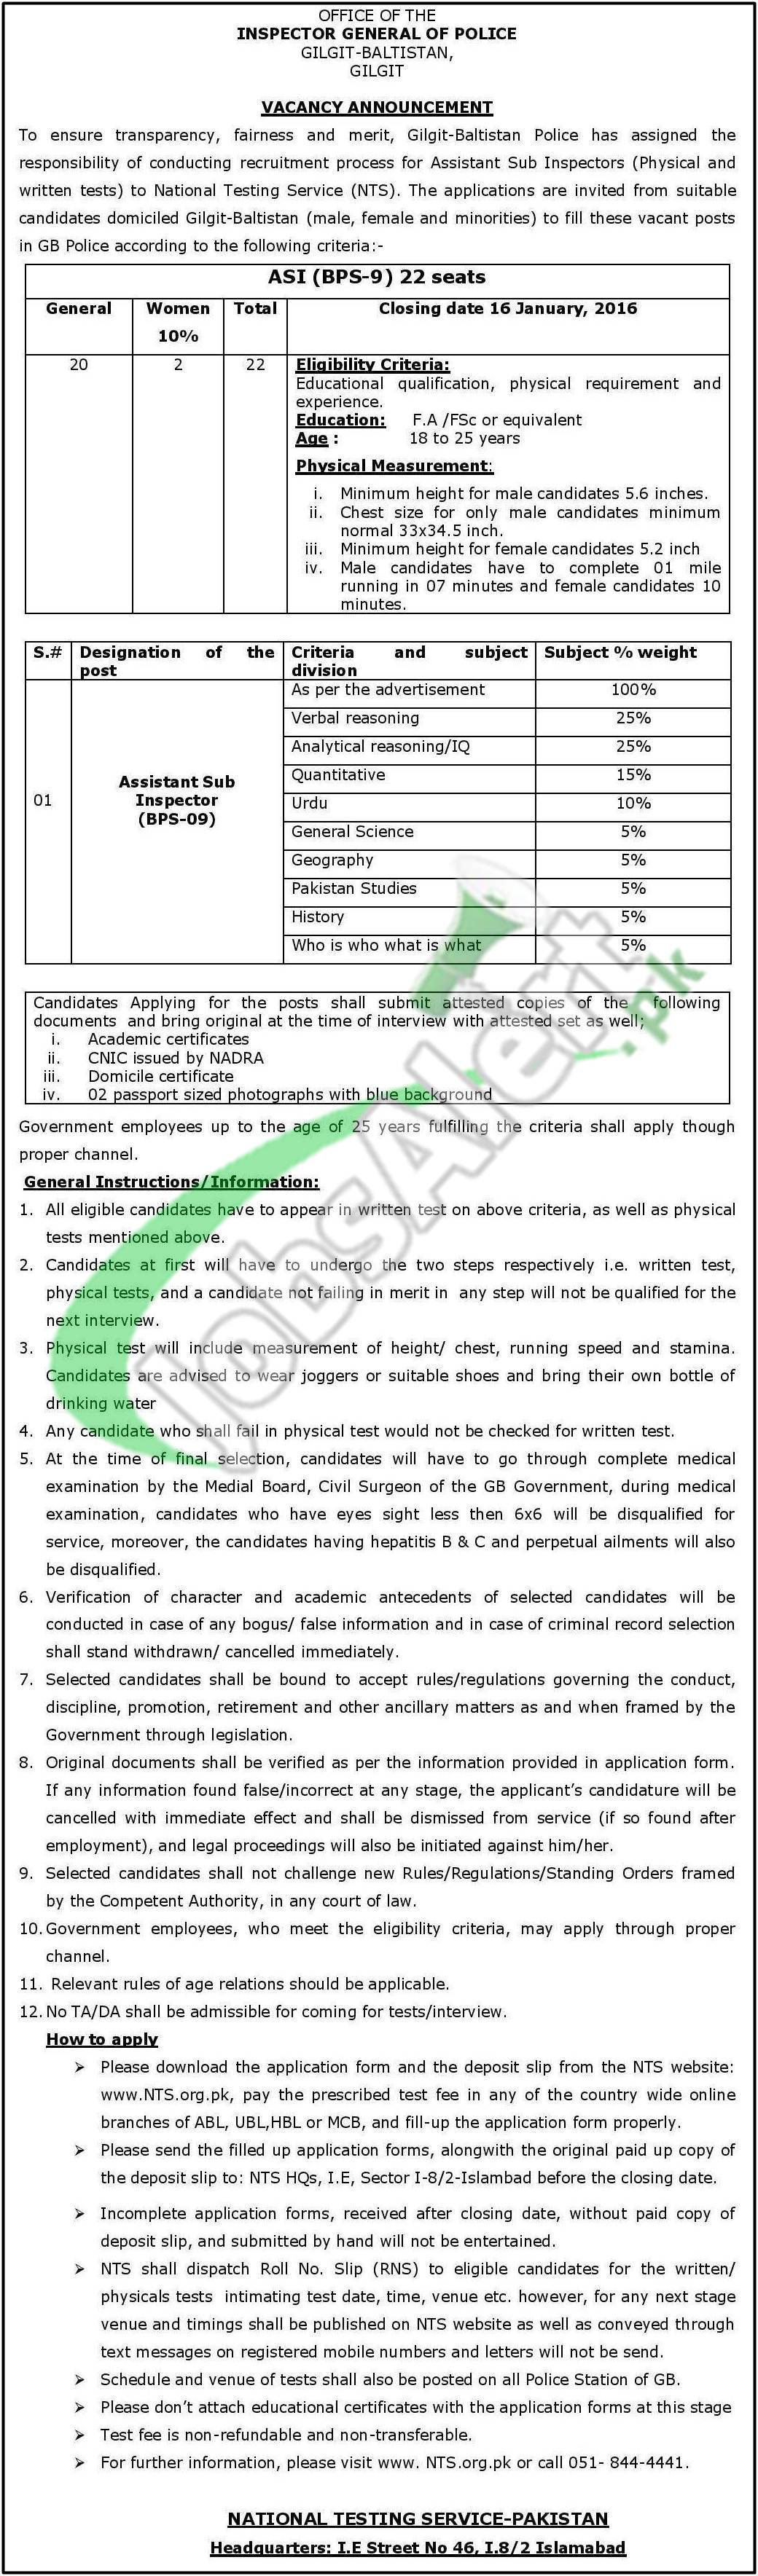 ASI Jobs in Gilgit Baltistan Police 2017 NTS Form Roll No